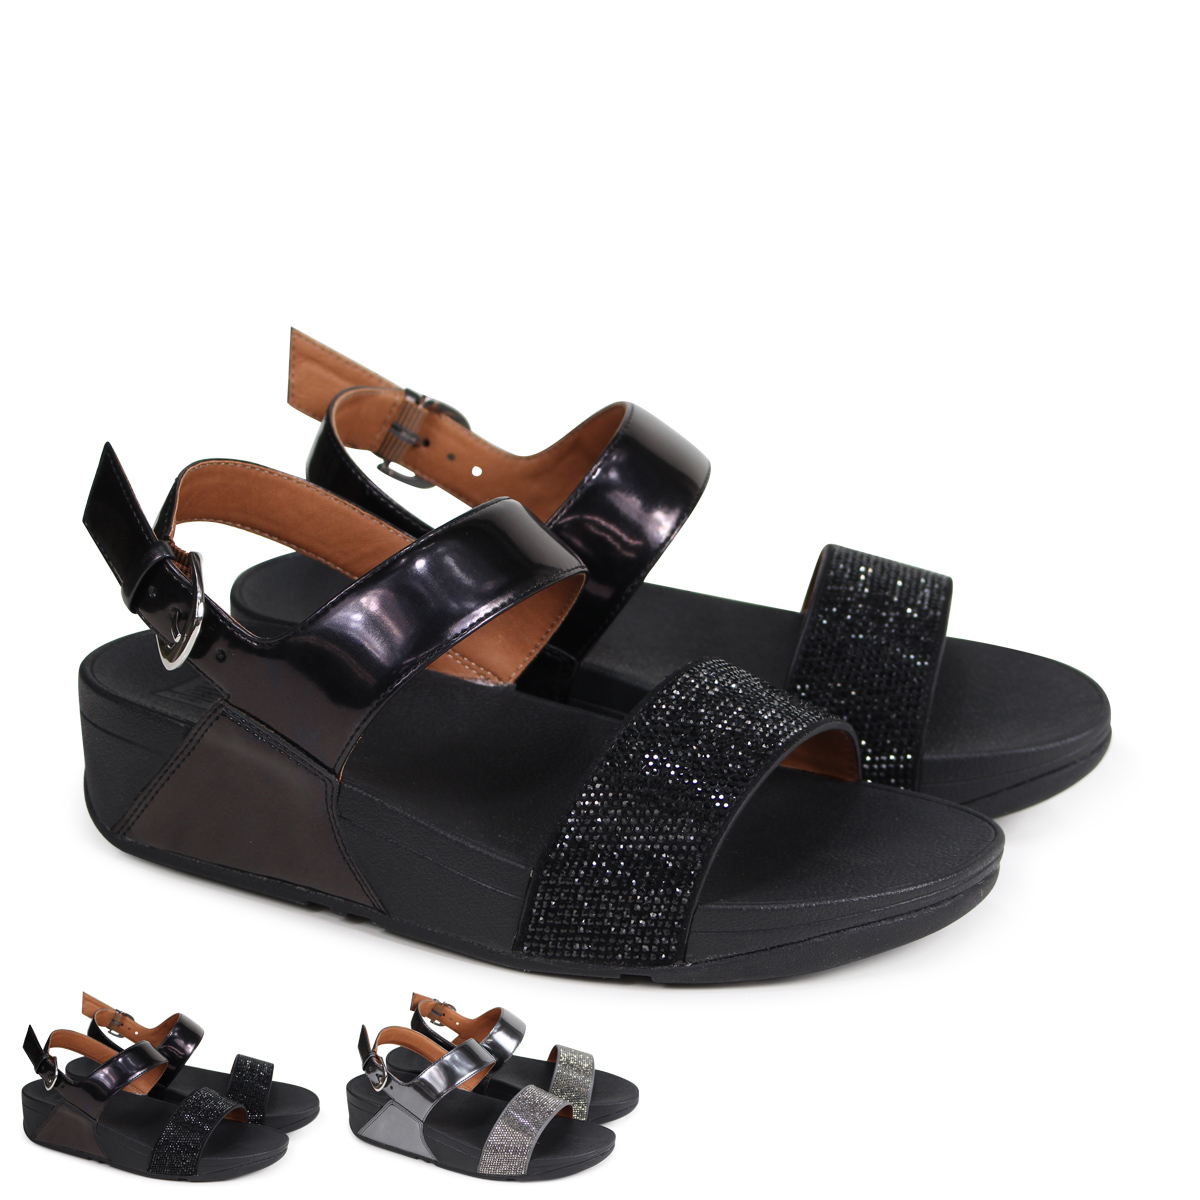 5334a5f6cbc Whats up Sports  FitFlop RITZY BACK-STRAP SANDALS サンダルフィット ...